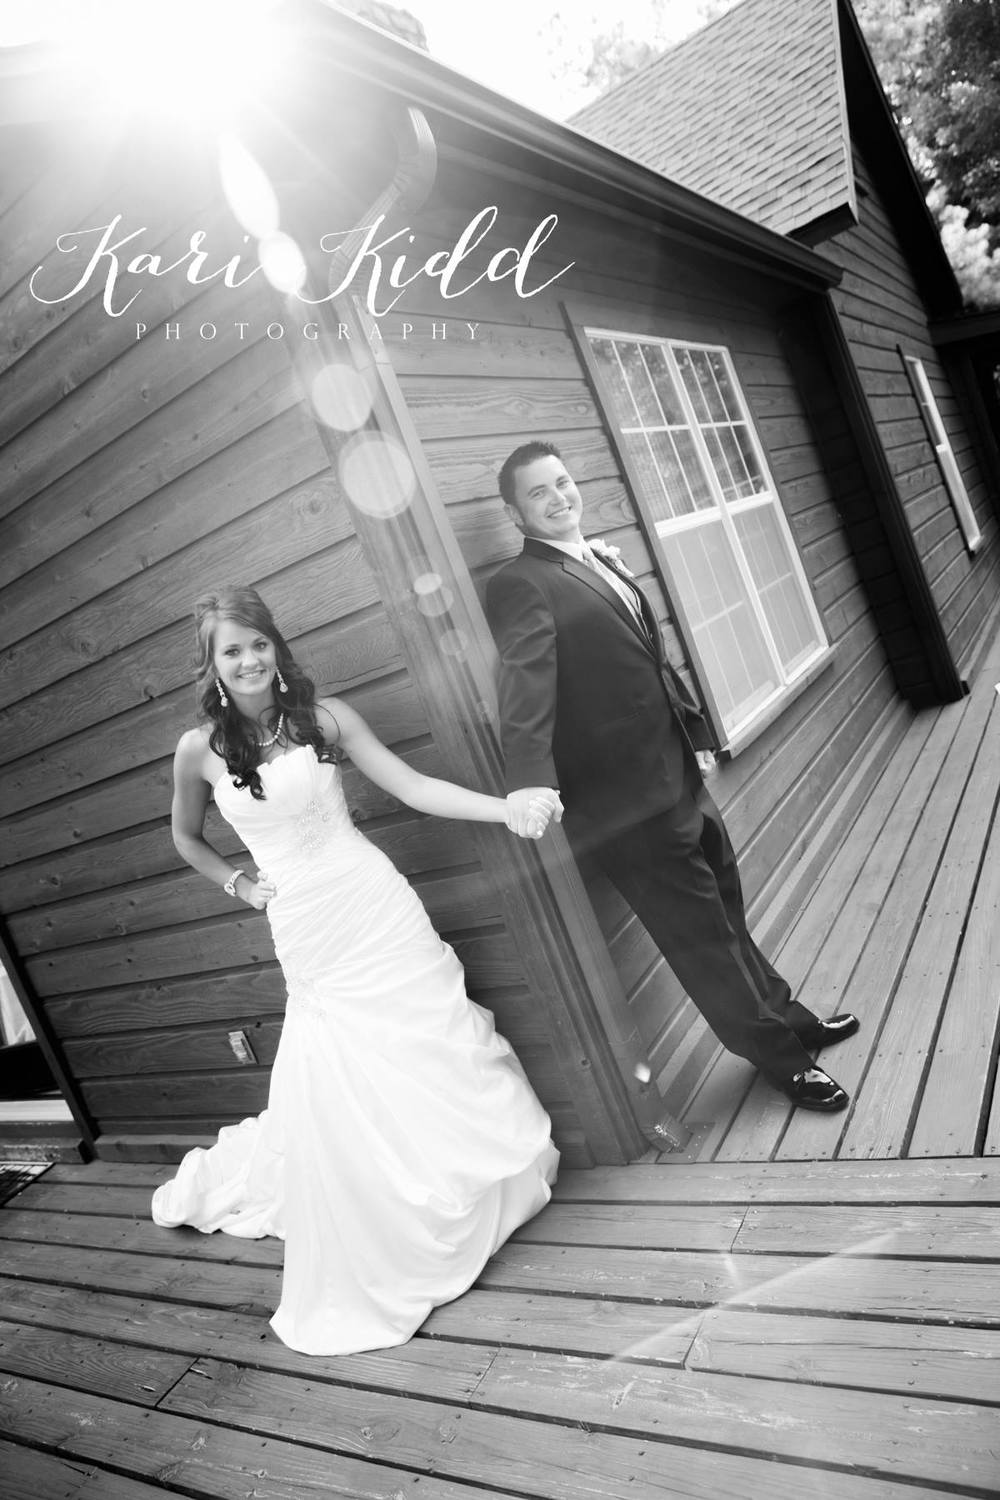 Mr. & Mrs. McReynolds Rogers / Lowell, Arkansas Photography - Northwest Arkansas Photographer